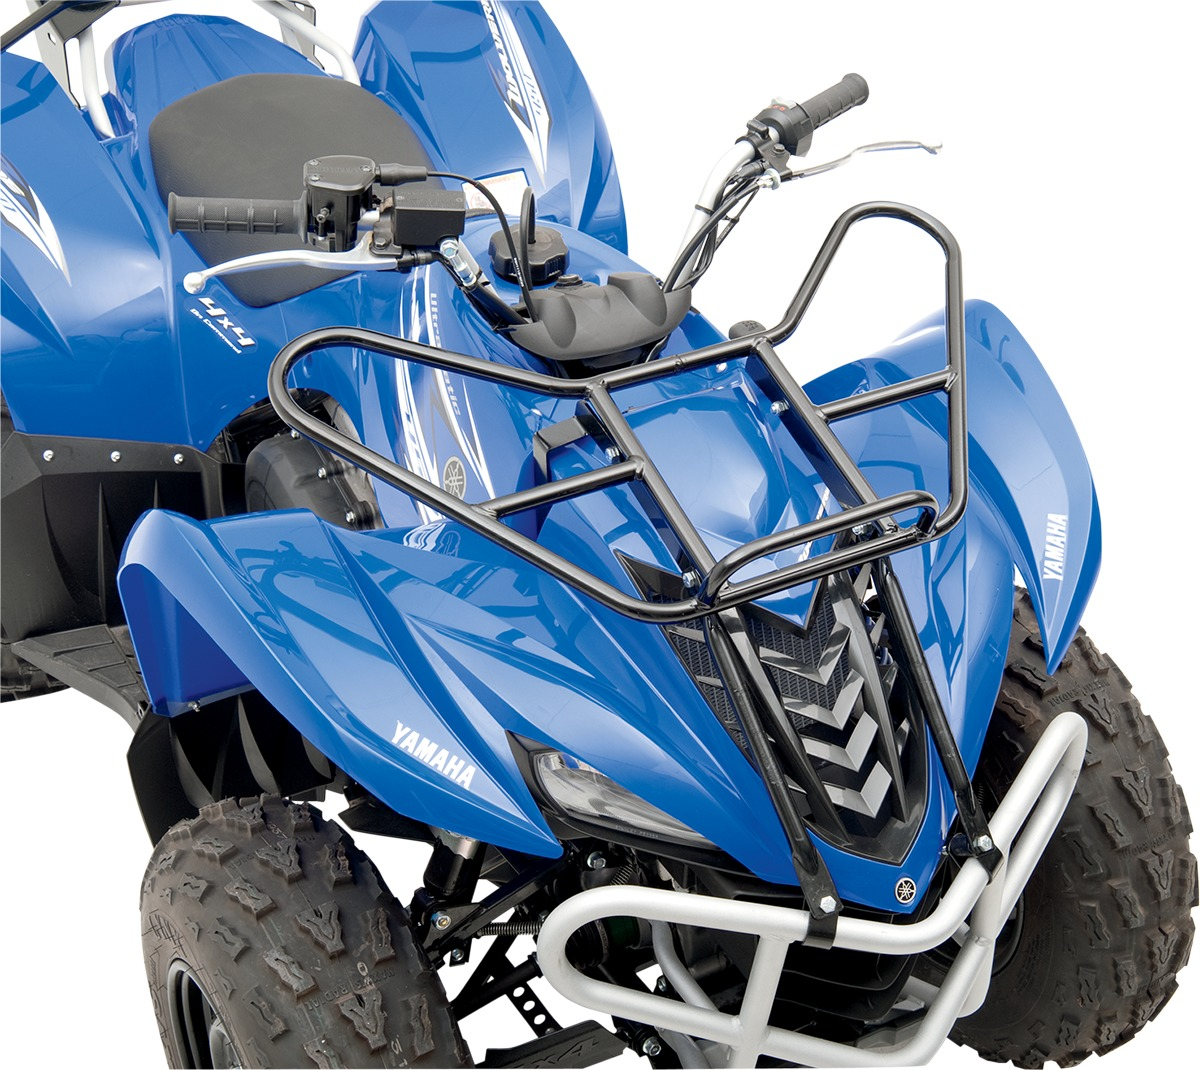 Moose front cargo rack for yamaha wolverine 350 07 09 for Yamaha wolverine 450 for sale